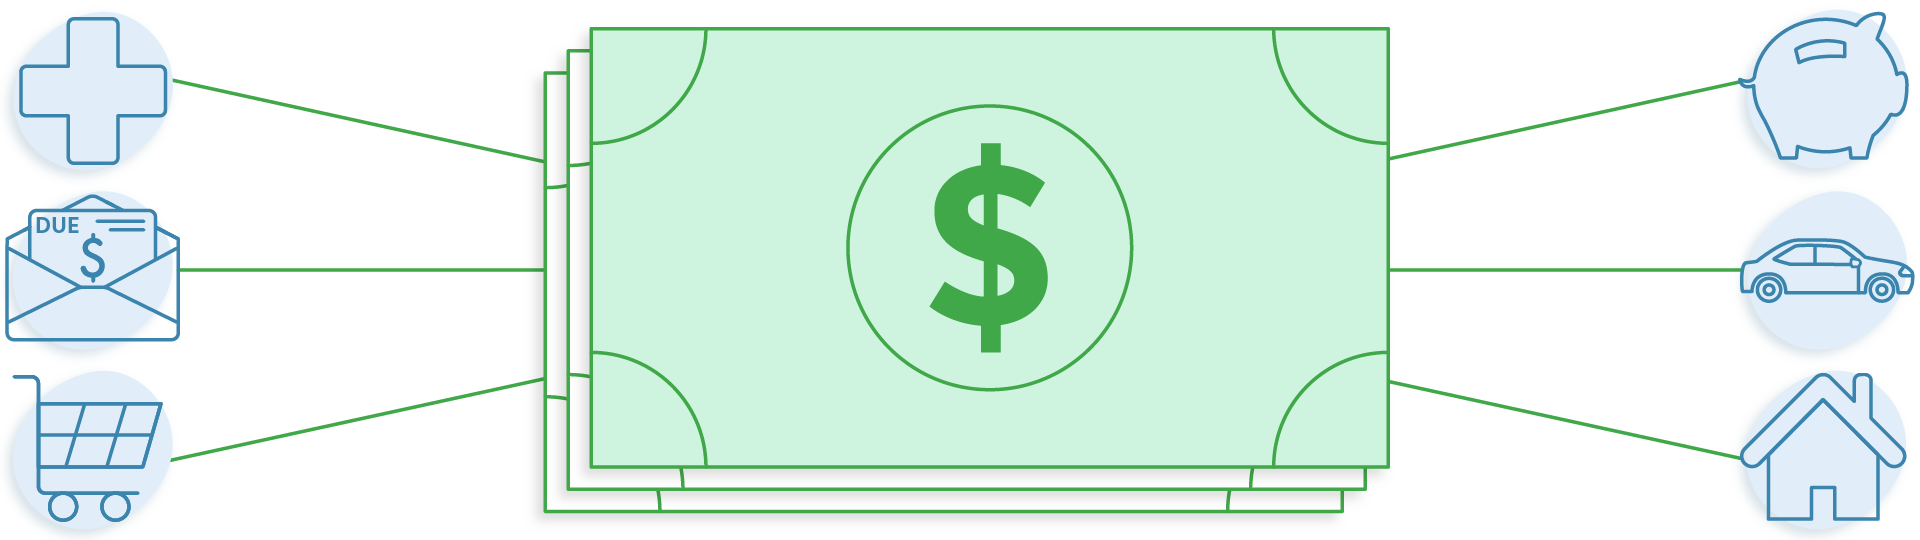 Illustration of a stack of money and icons indicating healthcare, bills, groceries, savings, auto expenses, and home expenses